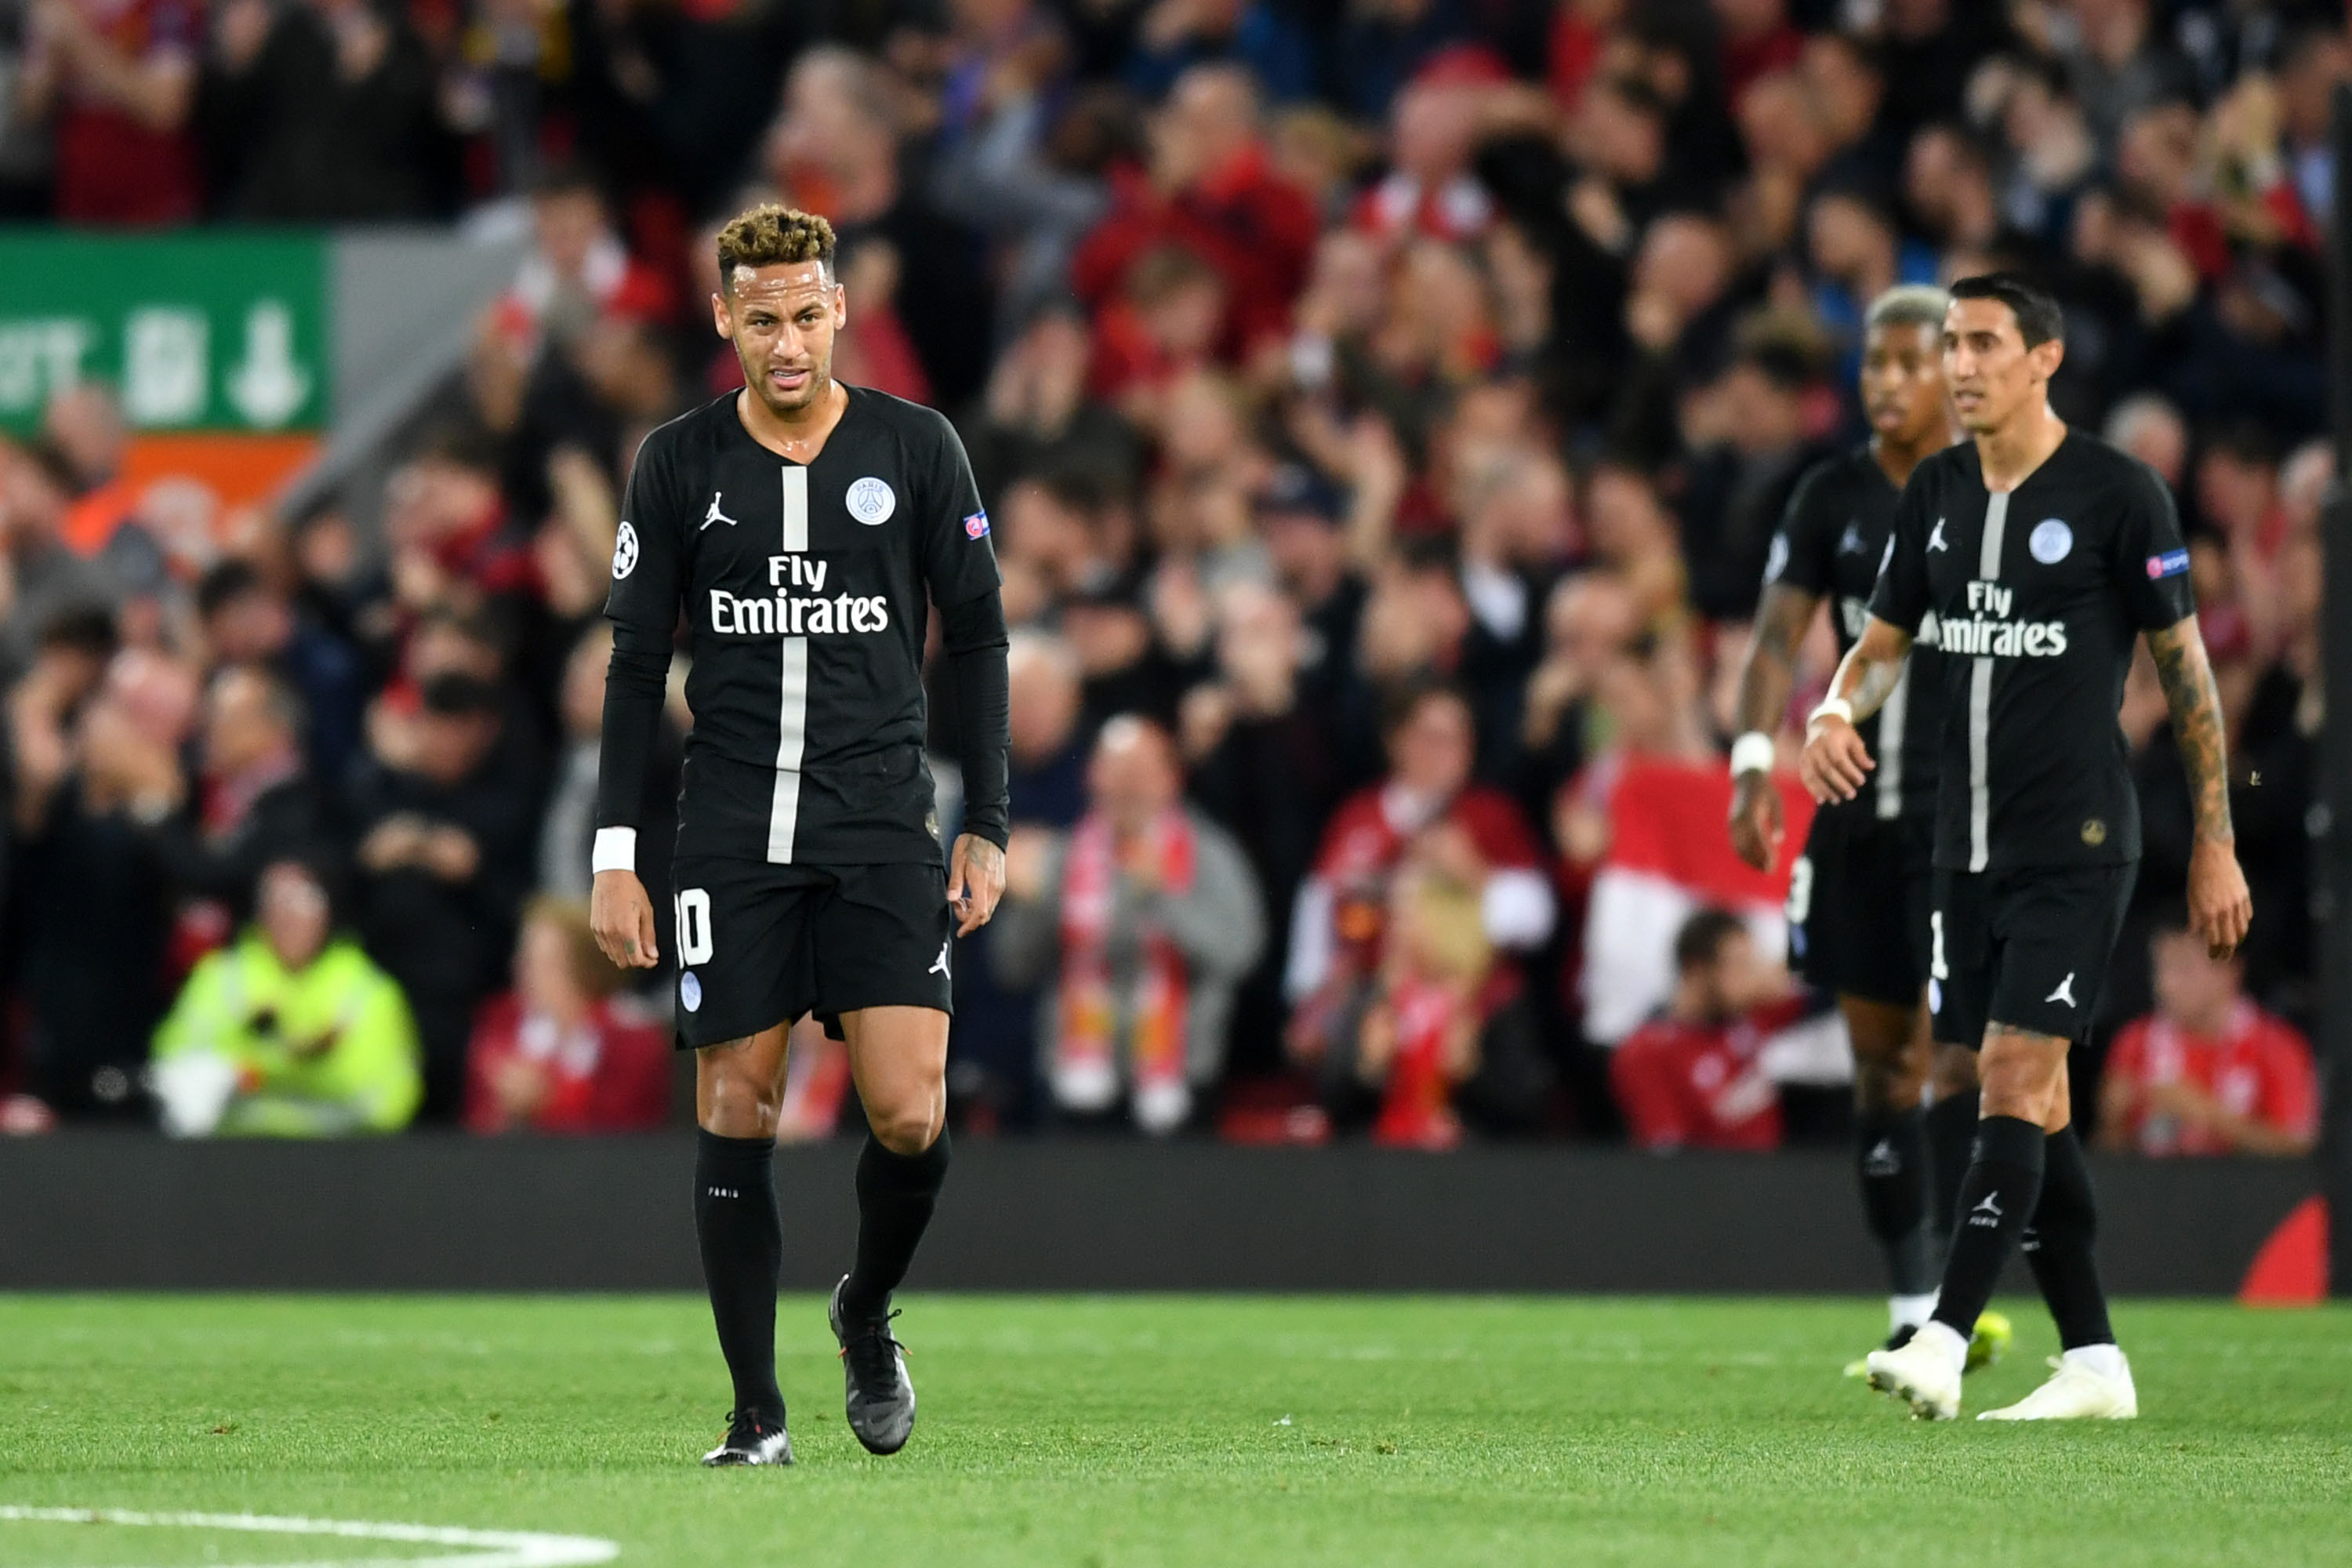 18 September 2018: Neymar looks dejected after conceding the first goal during the UEFA Champions League match between Liverpool and Paris Saint-Germain at Anfield. (Photo by Michael Regan/Getty Images)